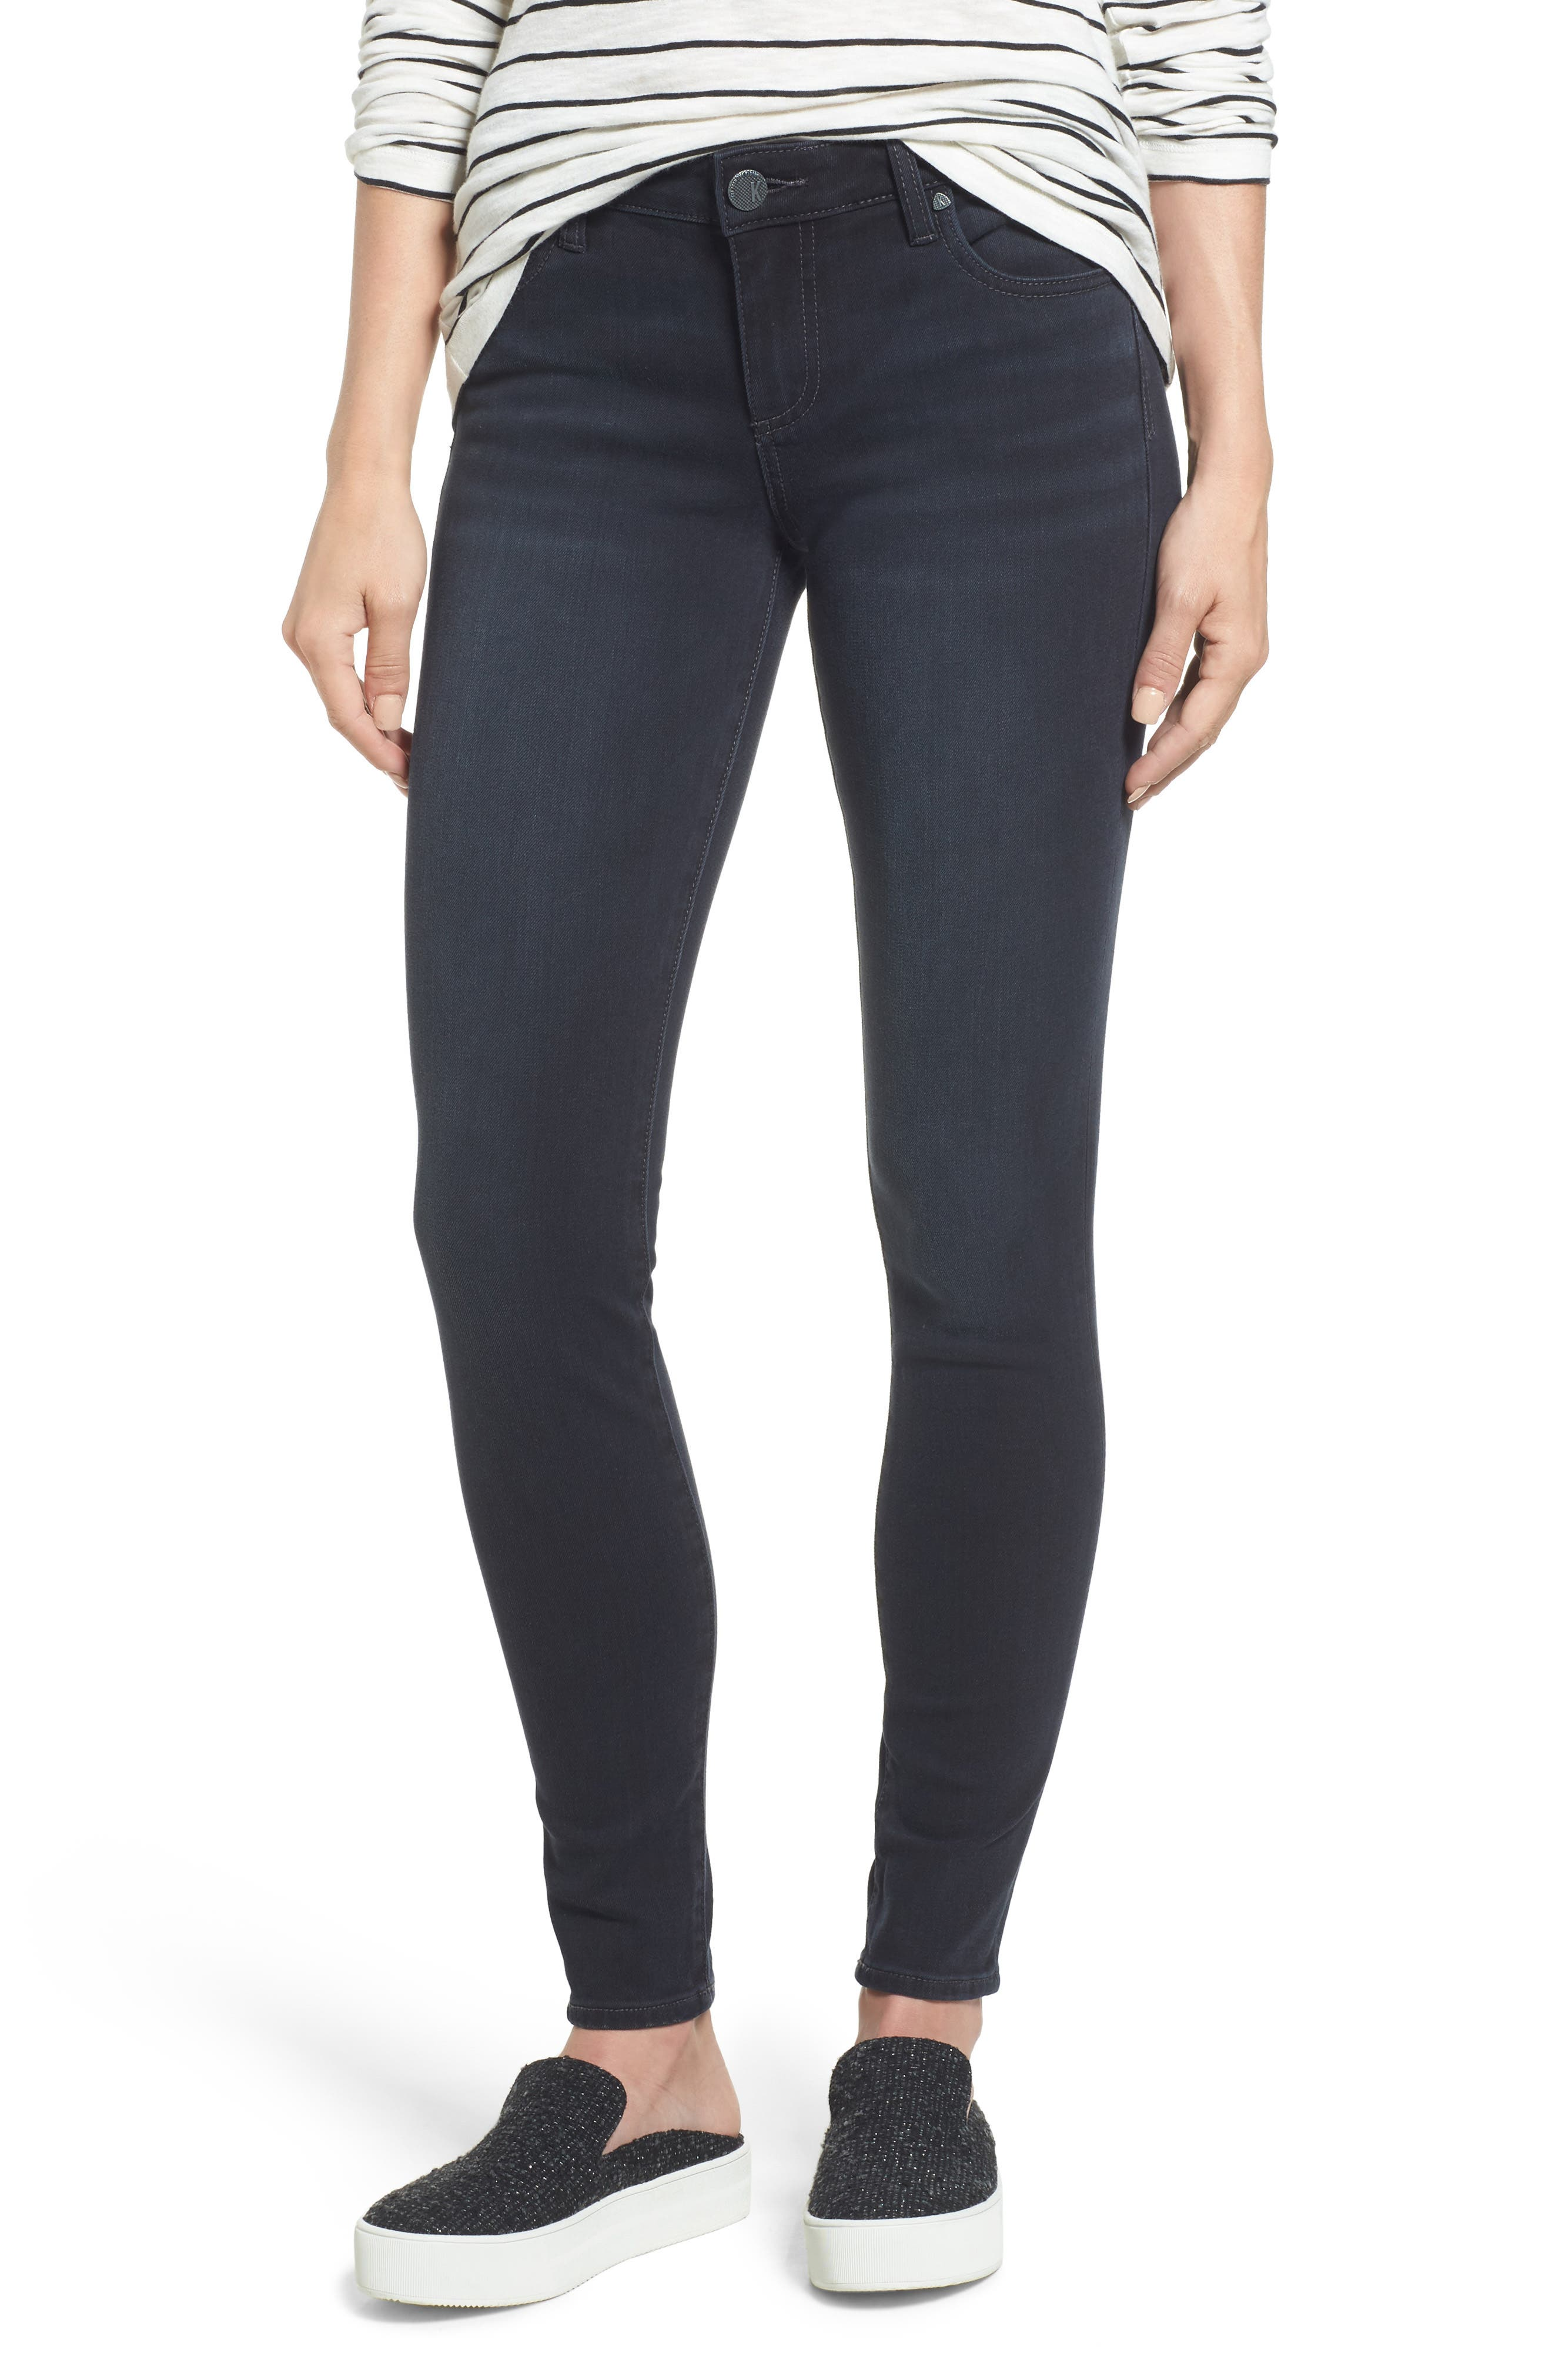 Main Image - KUT from the Kloth Mia Toothpick Skinny Jeans (Inquisitive)